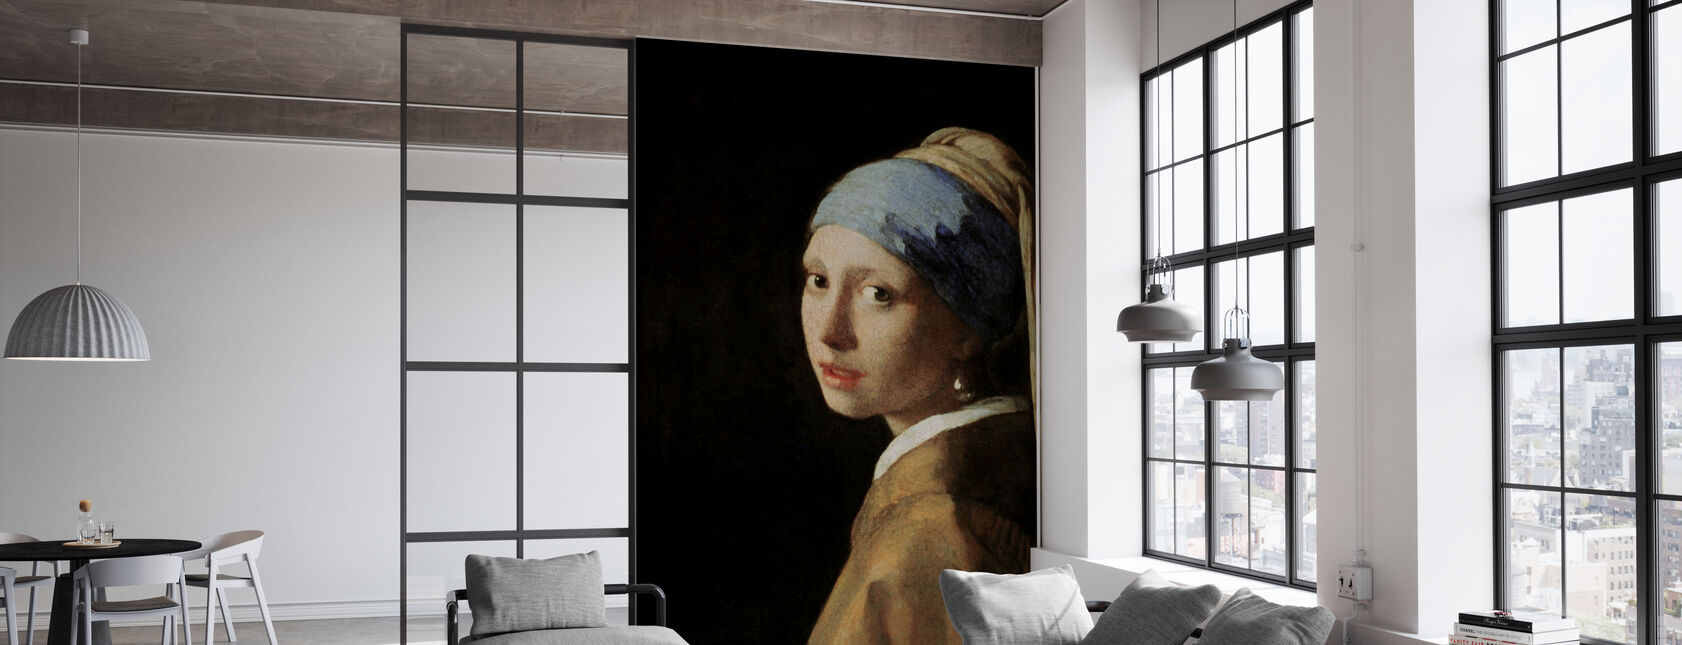 Girl with a Pearl Earring, Jan Vermeer - Wallpaper - Office